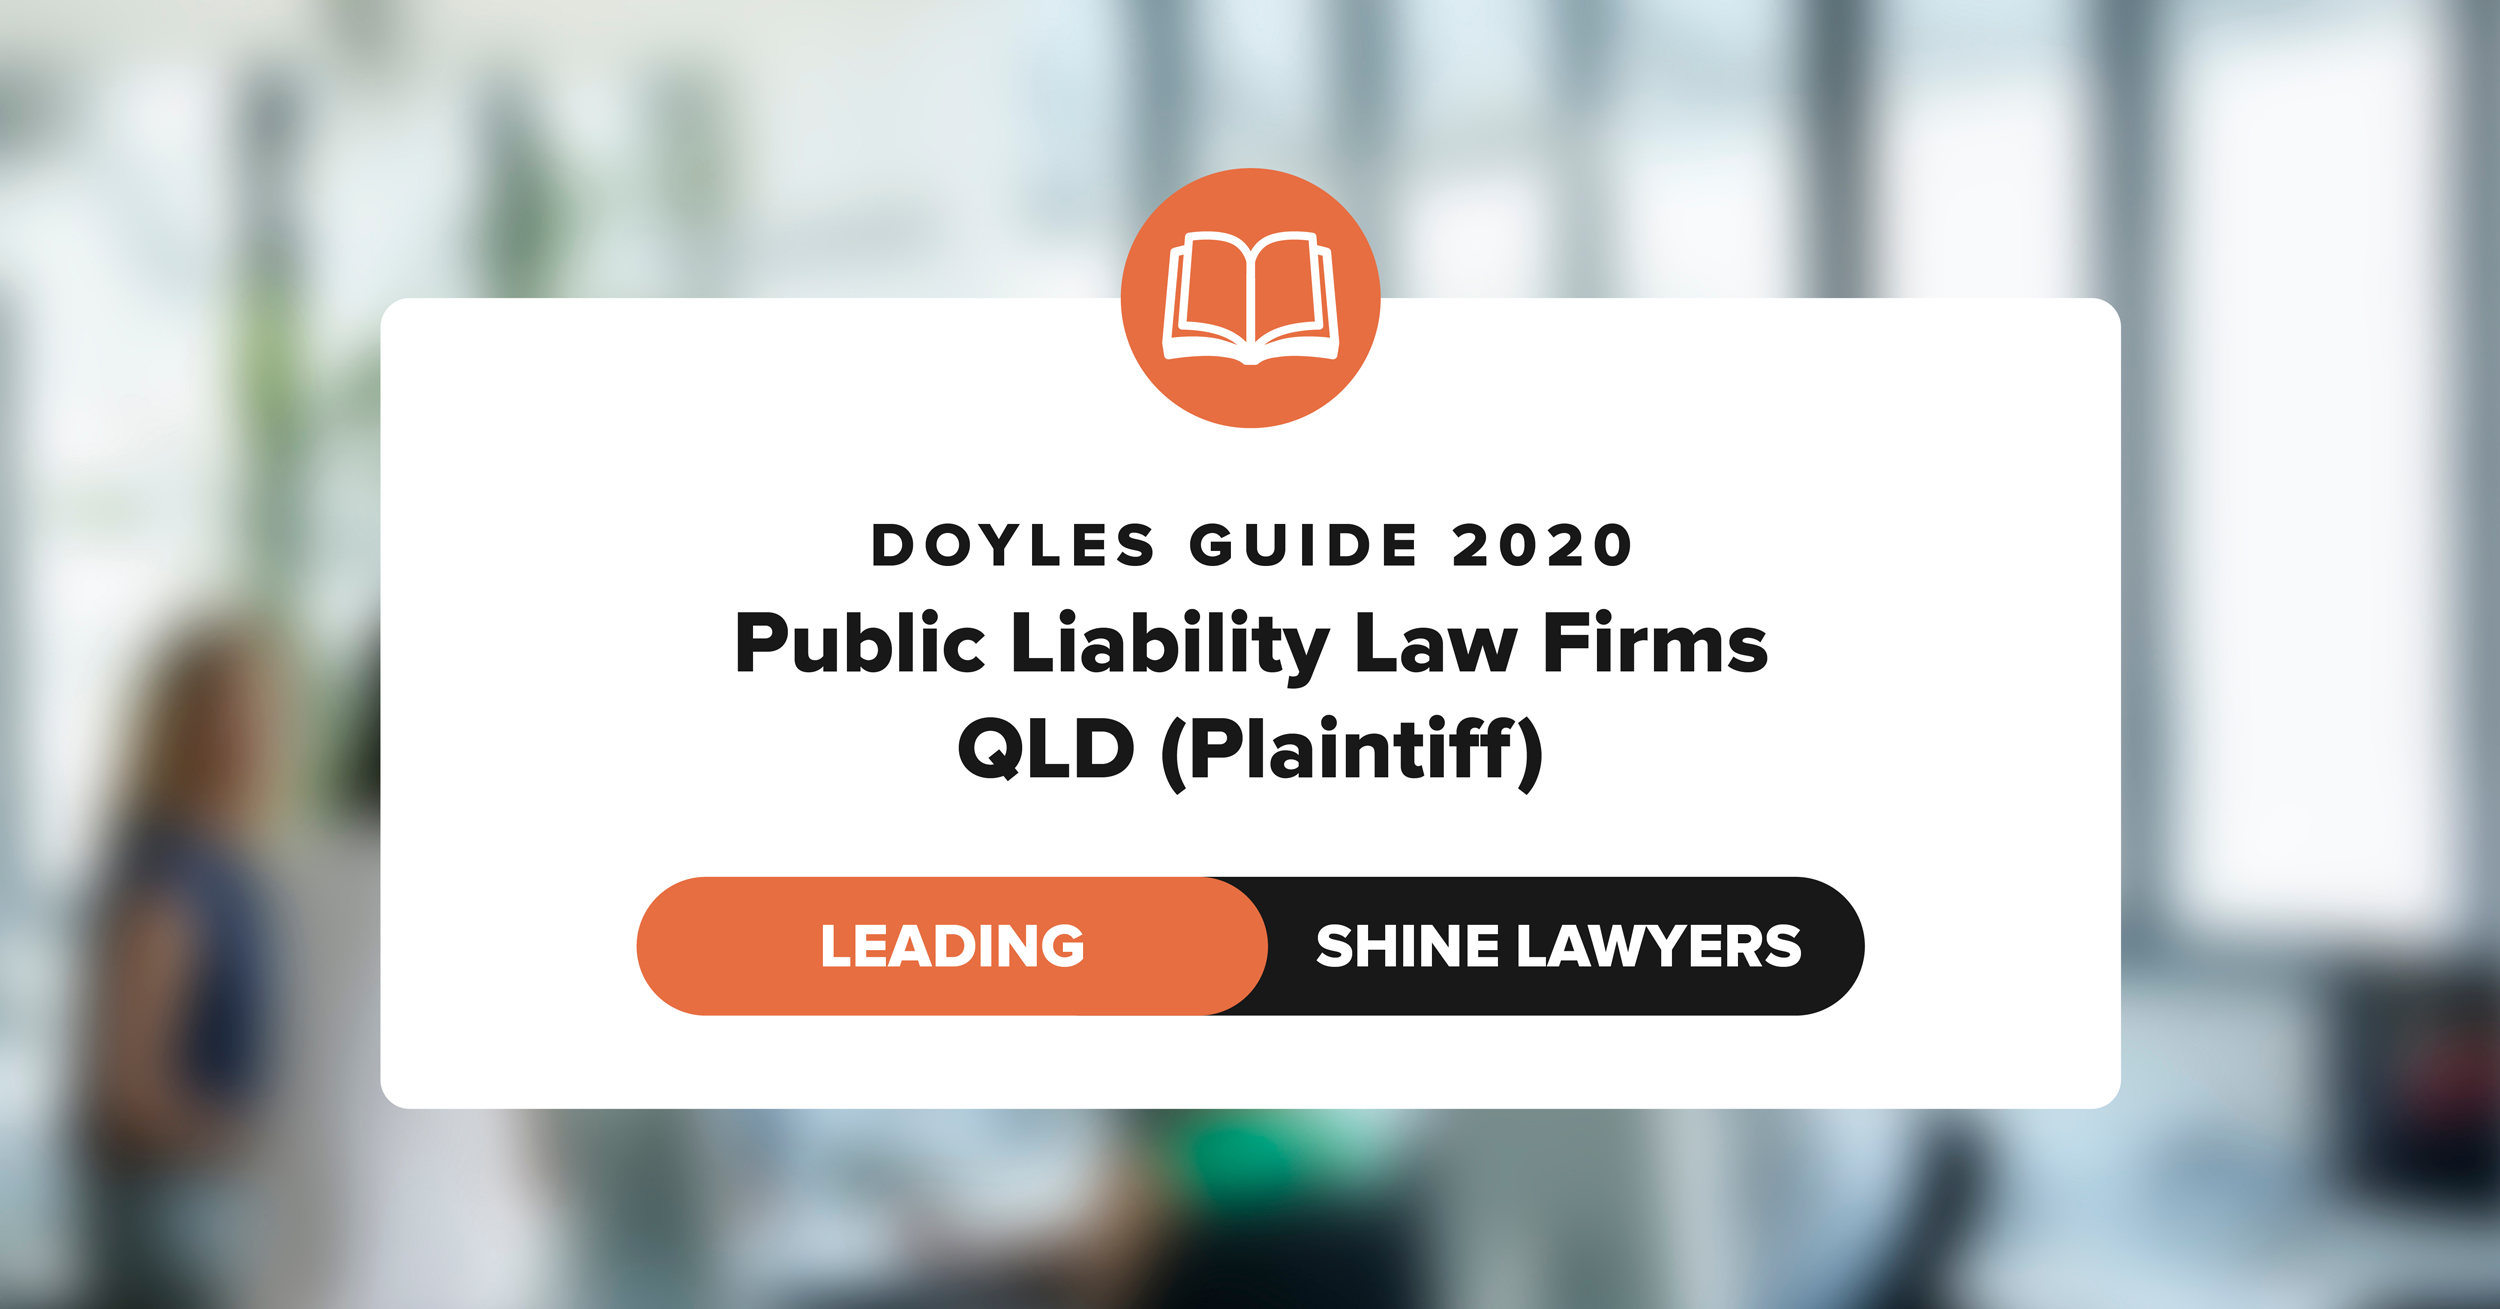 Doyles Guide 2020 Leading Public Liability Law Firm QLD